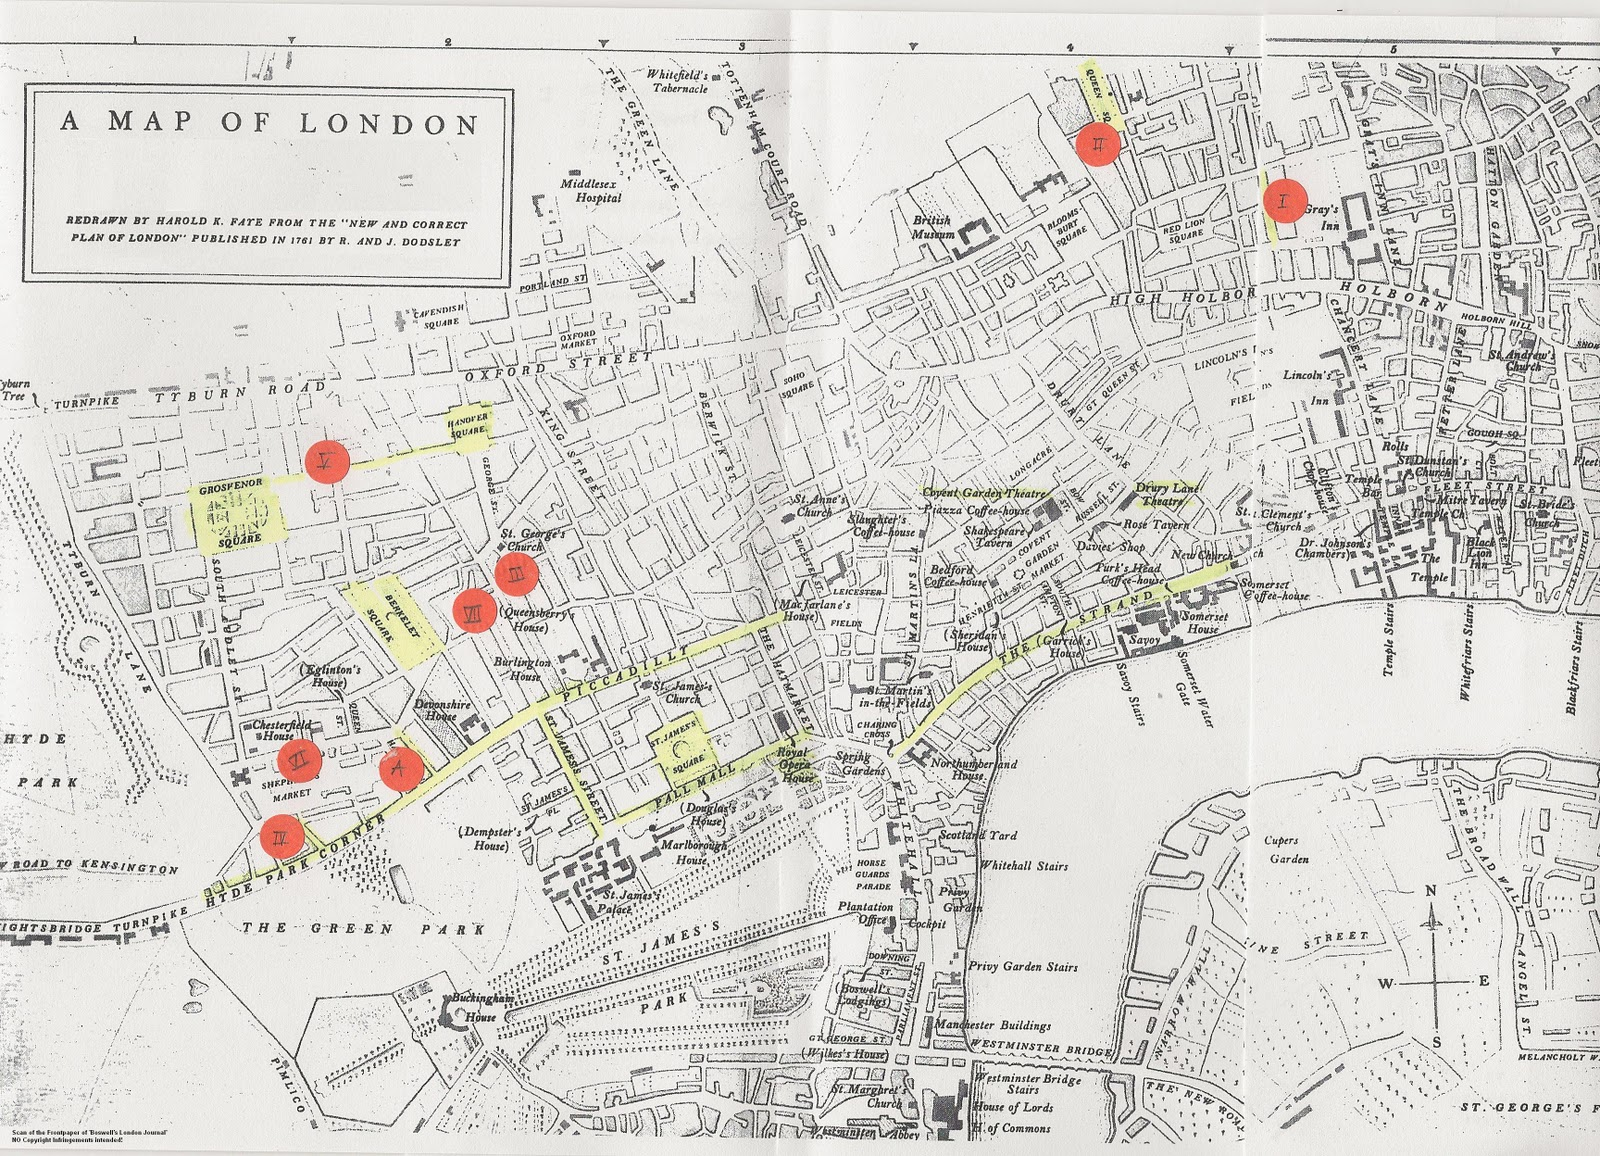 map of london 1761 showing the addresses of leyland manor characters